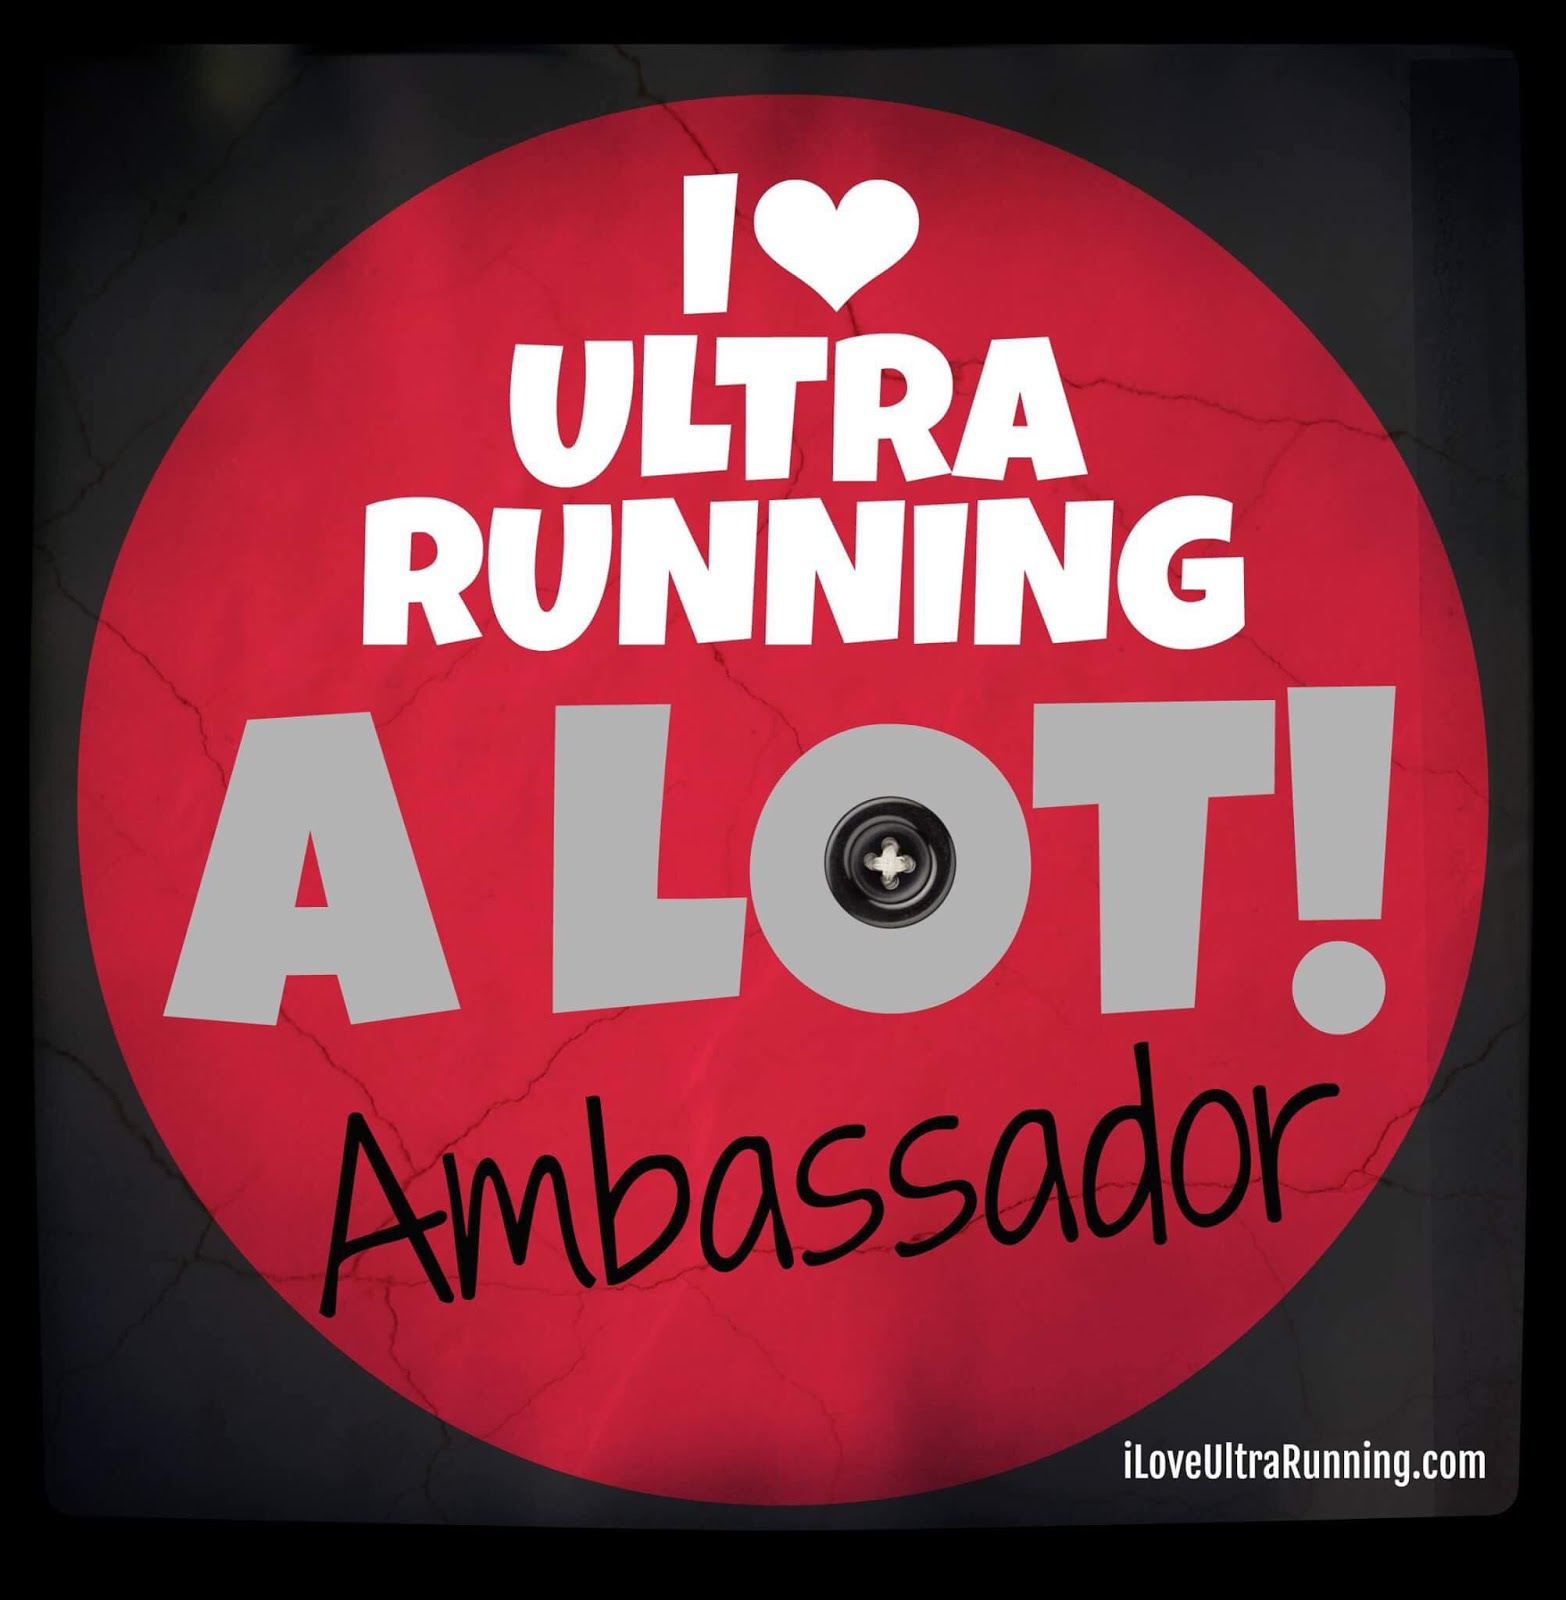 Managing Director - I Love Ultra Running Ambassador Program